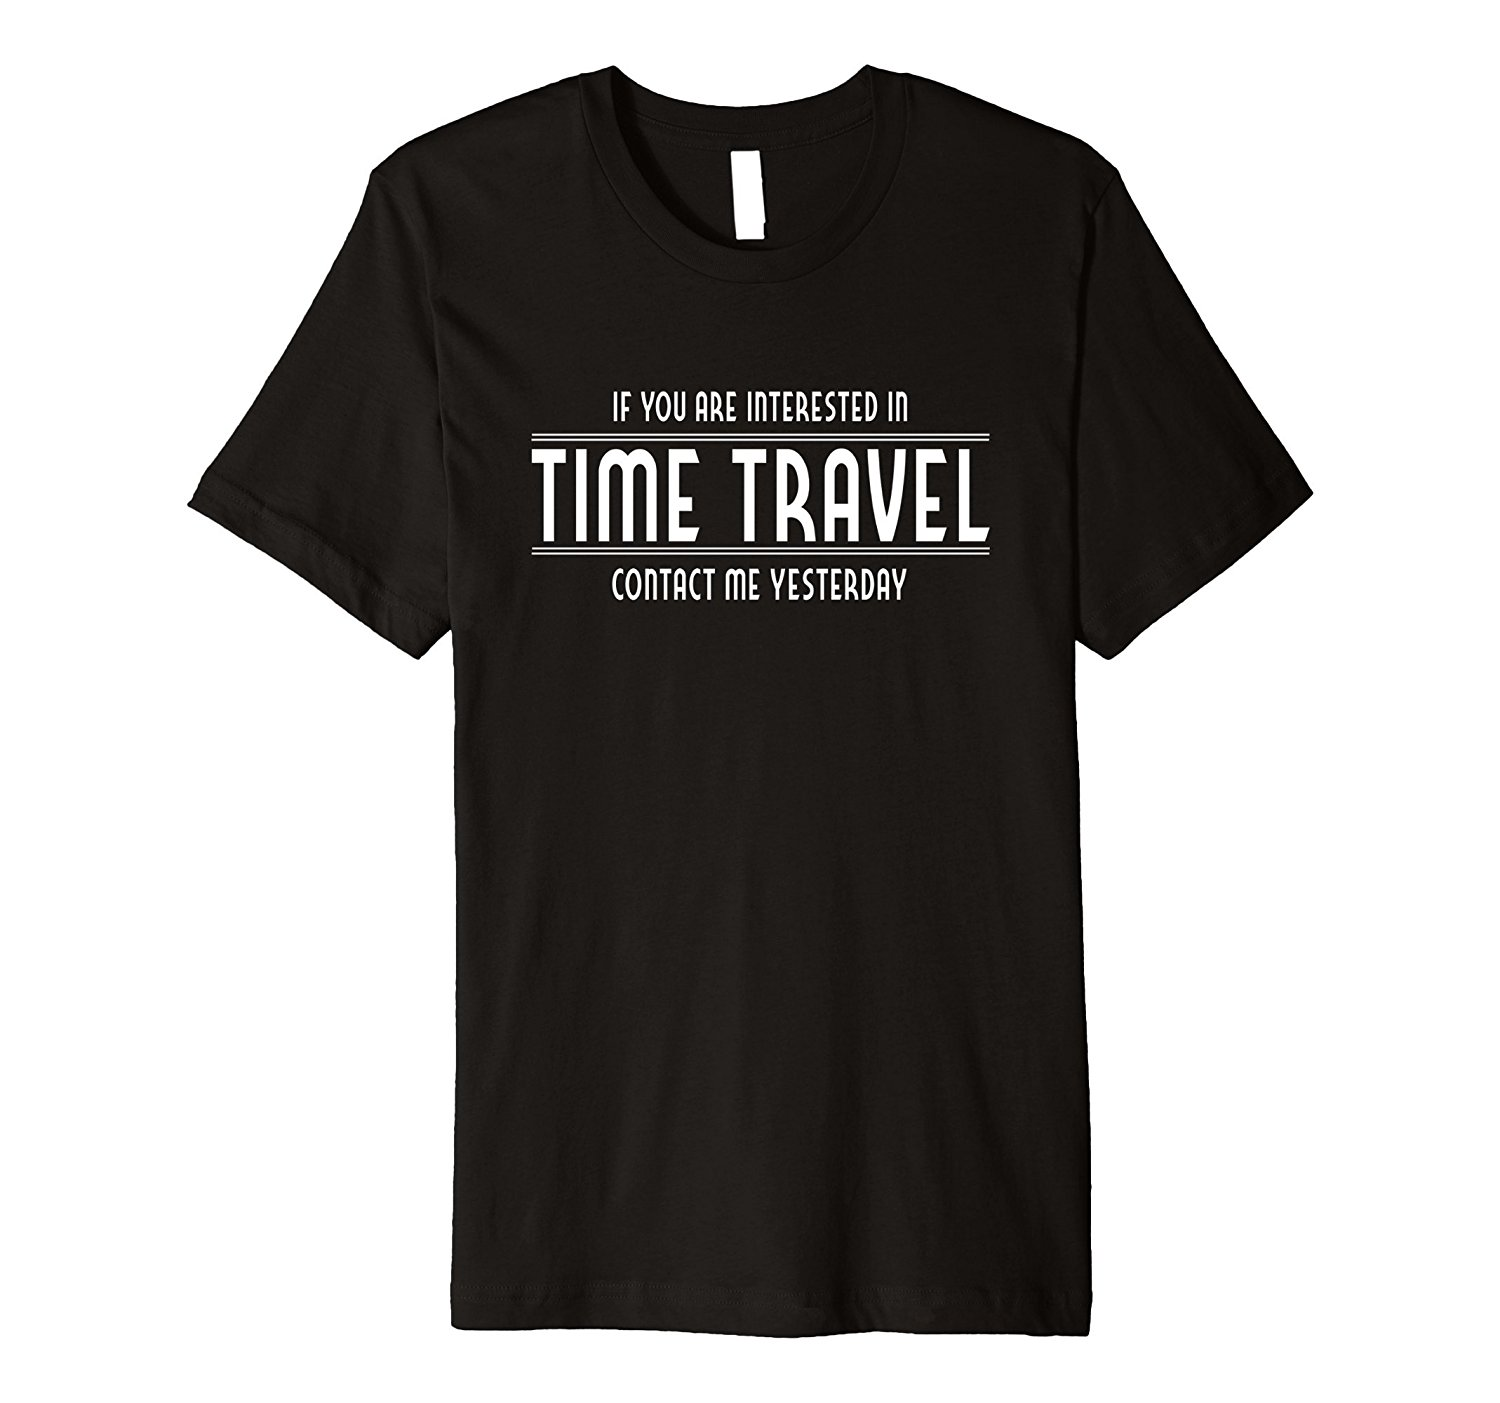 If Interested In Time Travel Contact Me Yesterday T-shirt Summer Short Sleeves New Fashion T-Shirts Round Neck Clothes